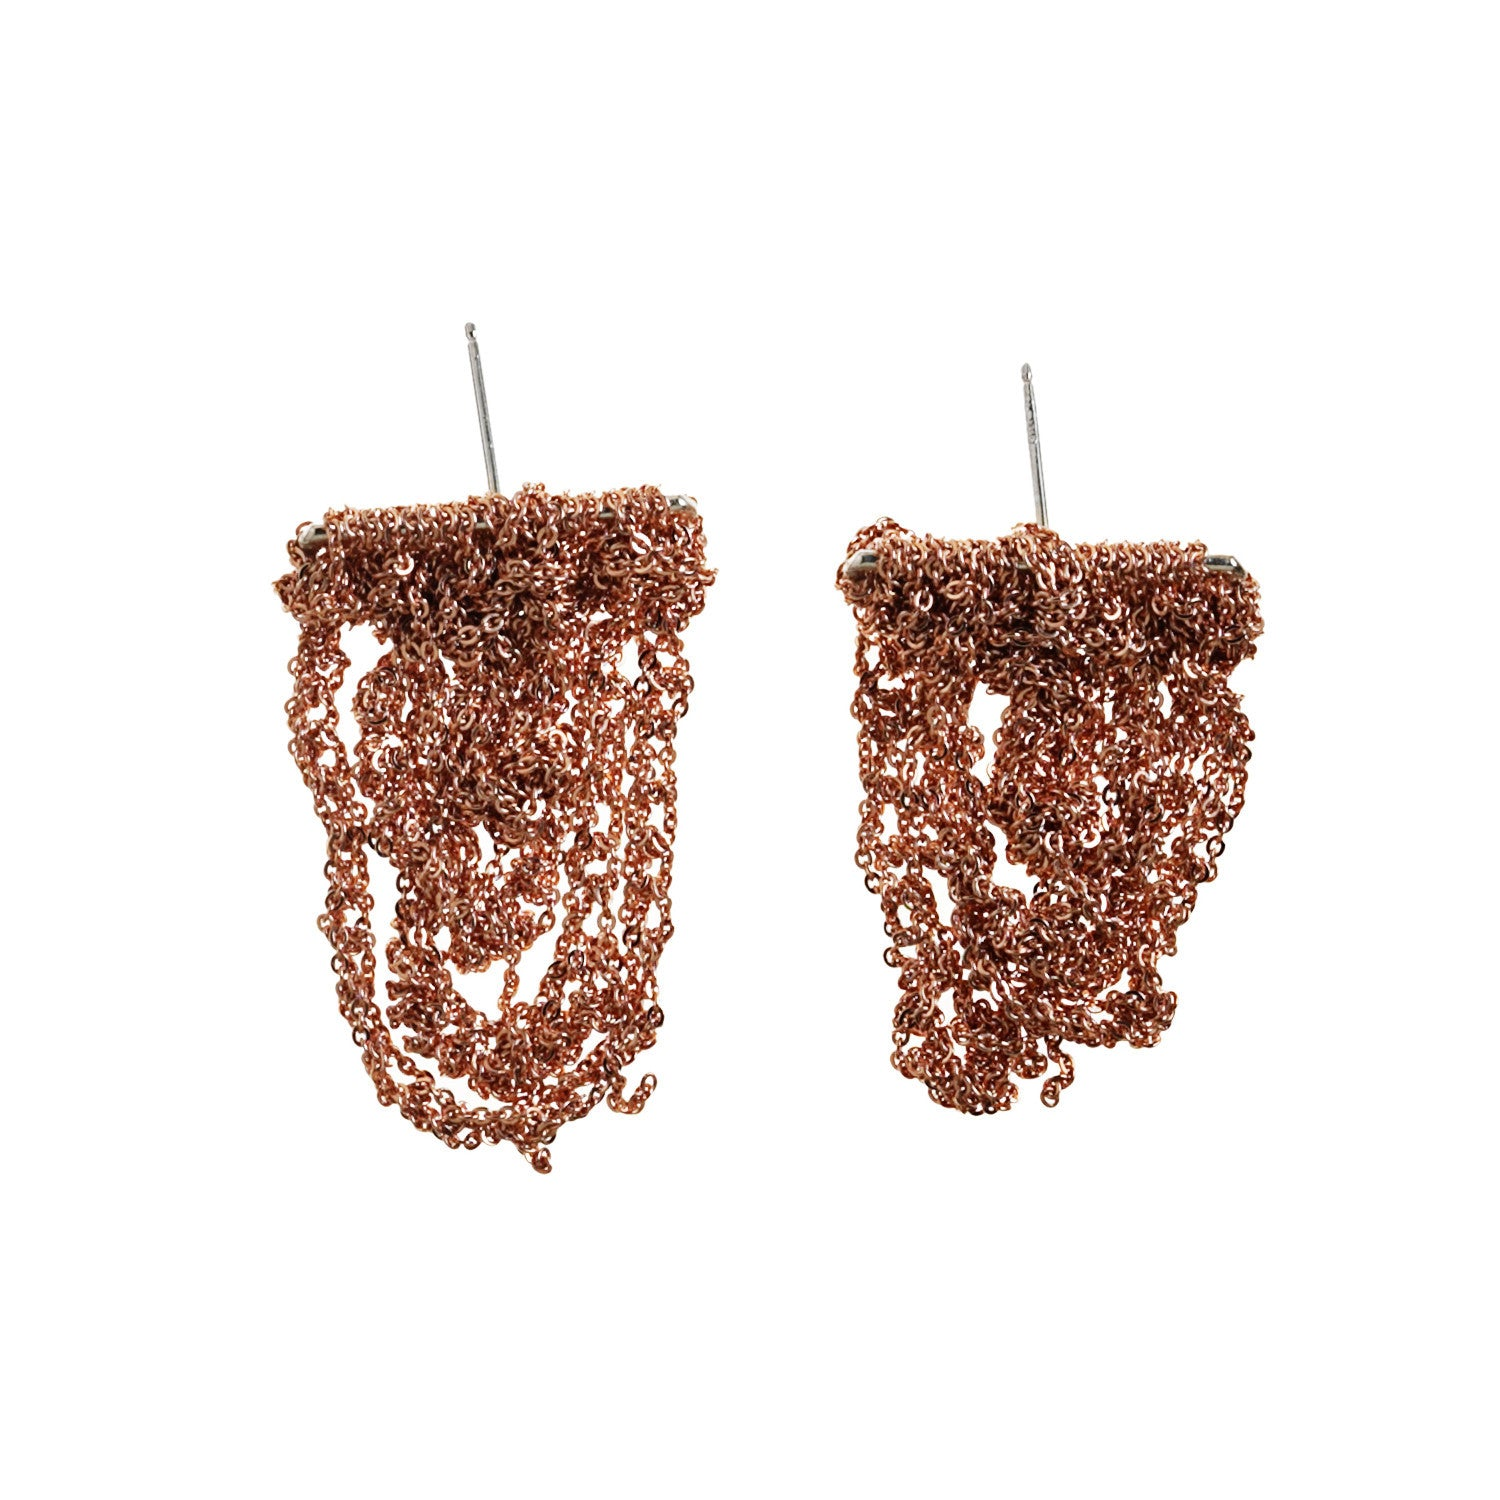 Prestige Earrings in Rose Gold